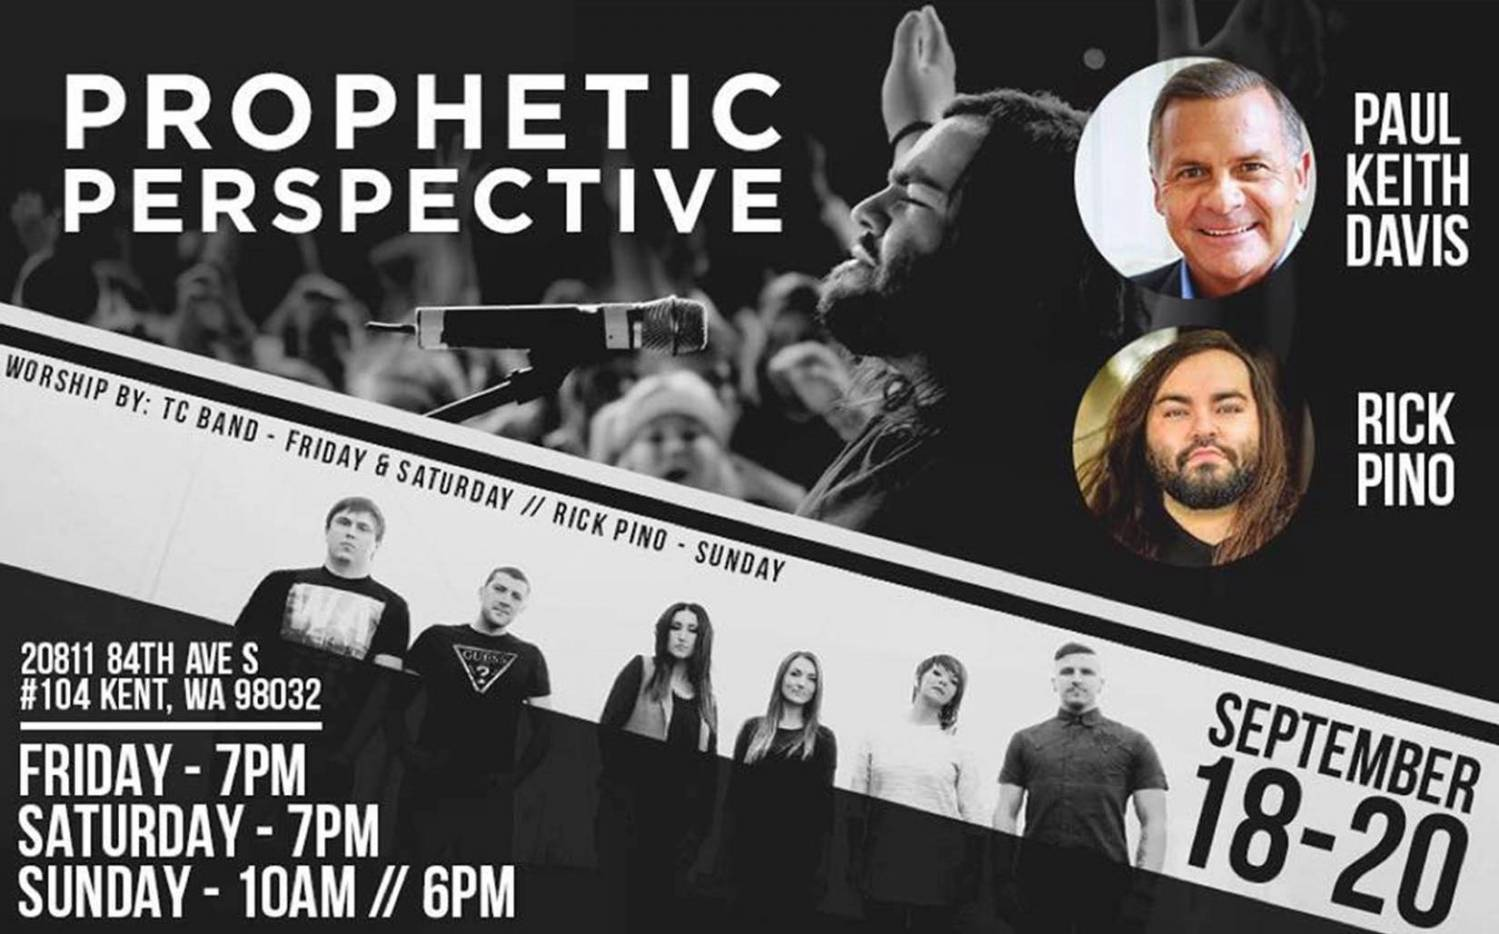 Prophetic Perspective Conference with Paul Kith Davis, Rick Pino and TC-Band (September 18-20 2015)